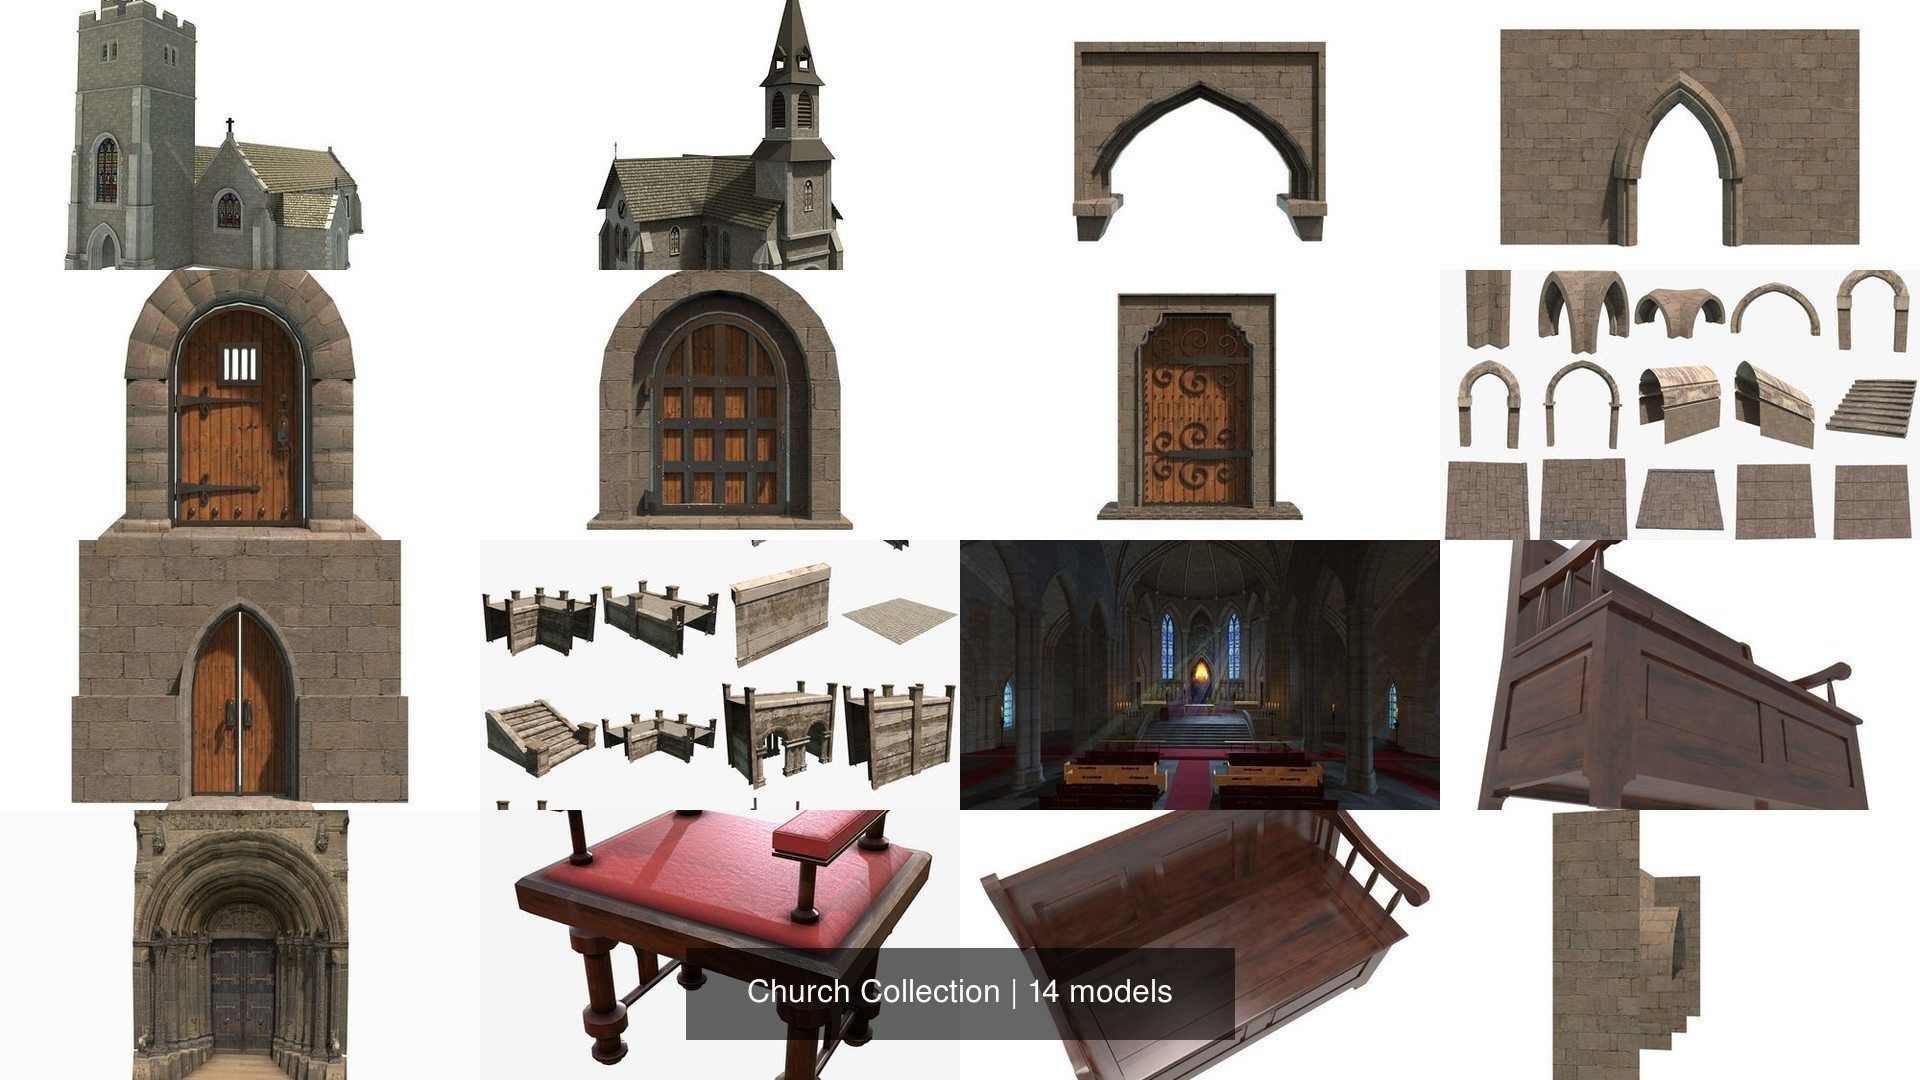 Church Collection